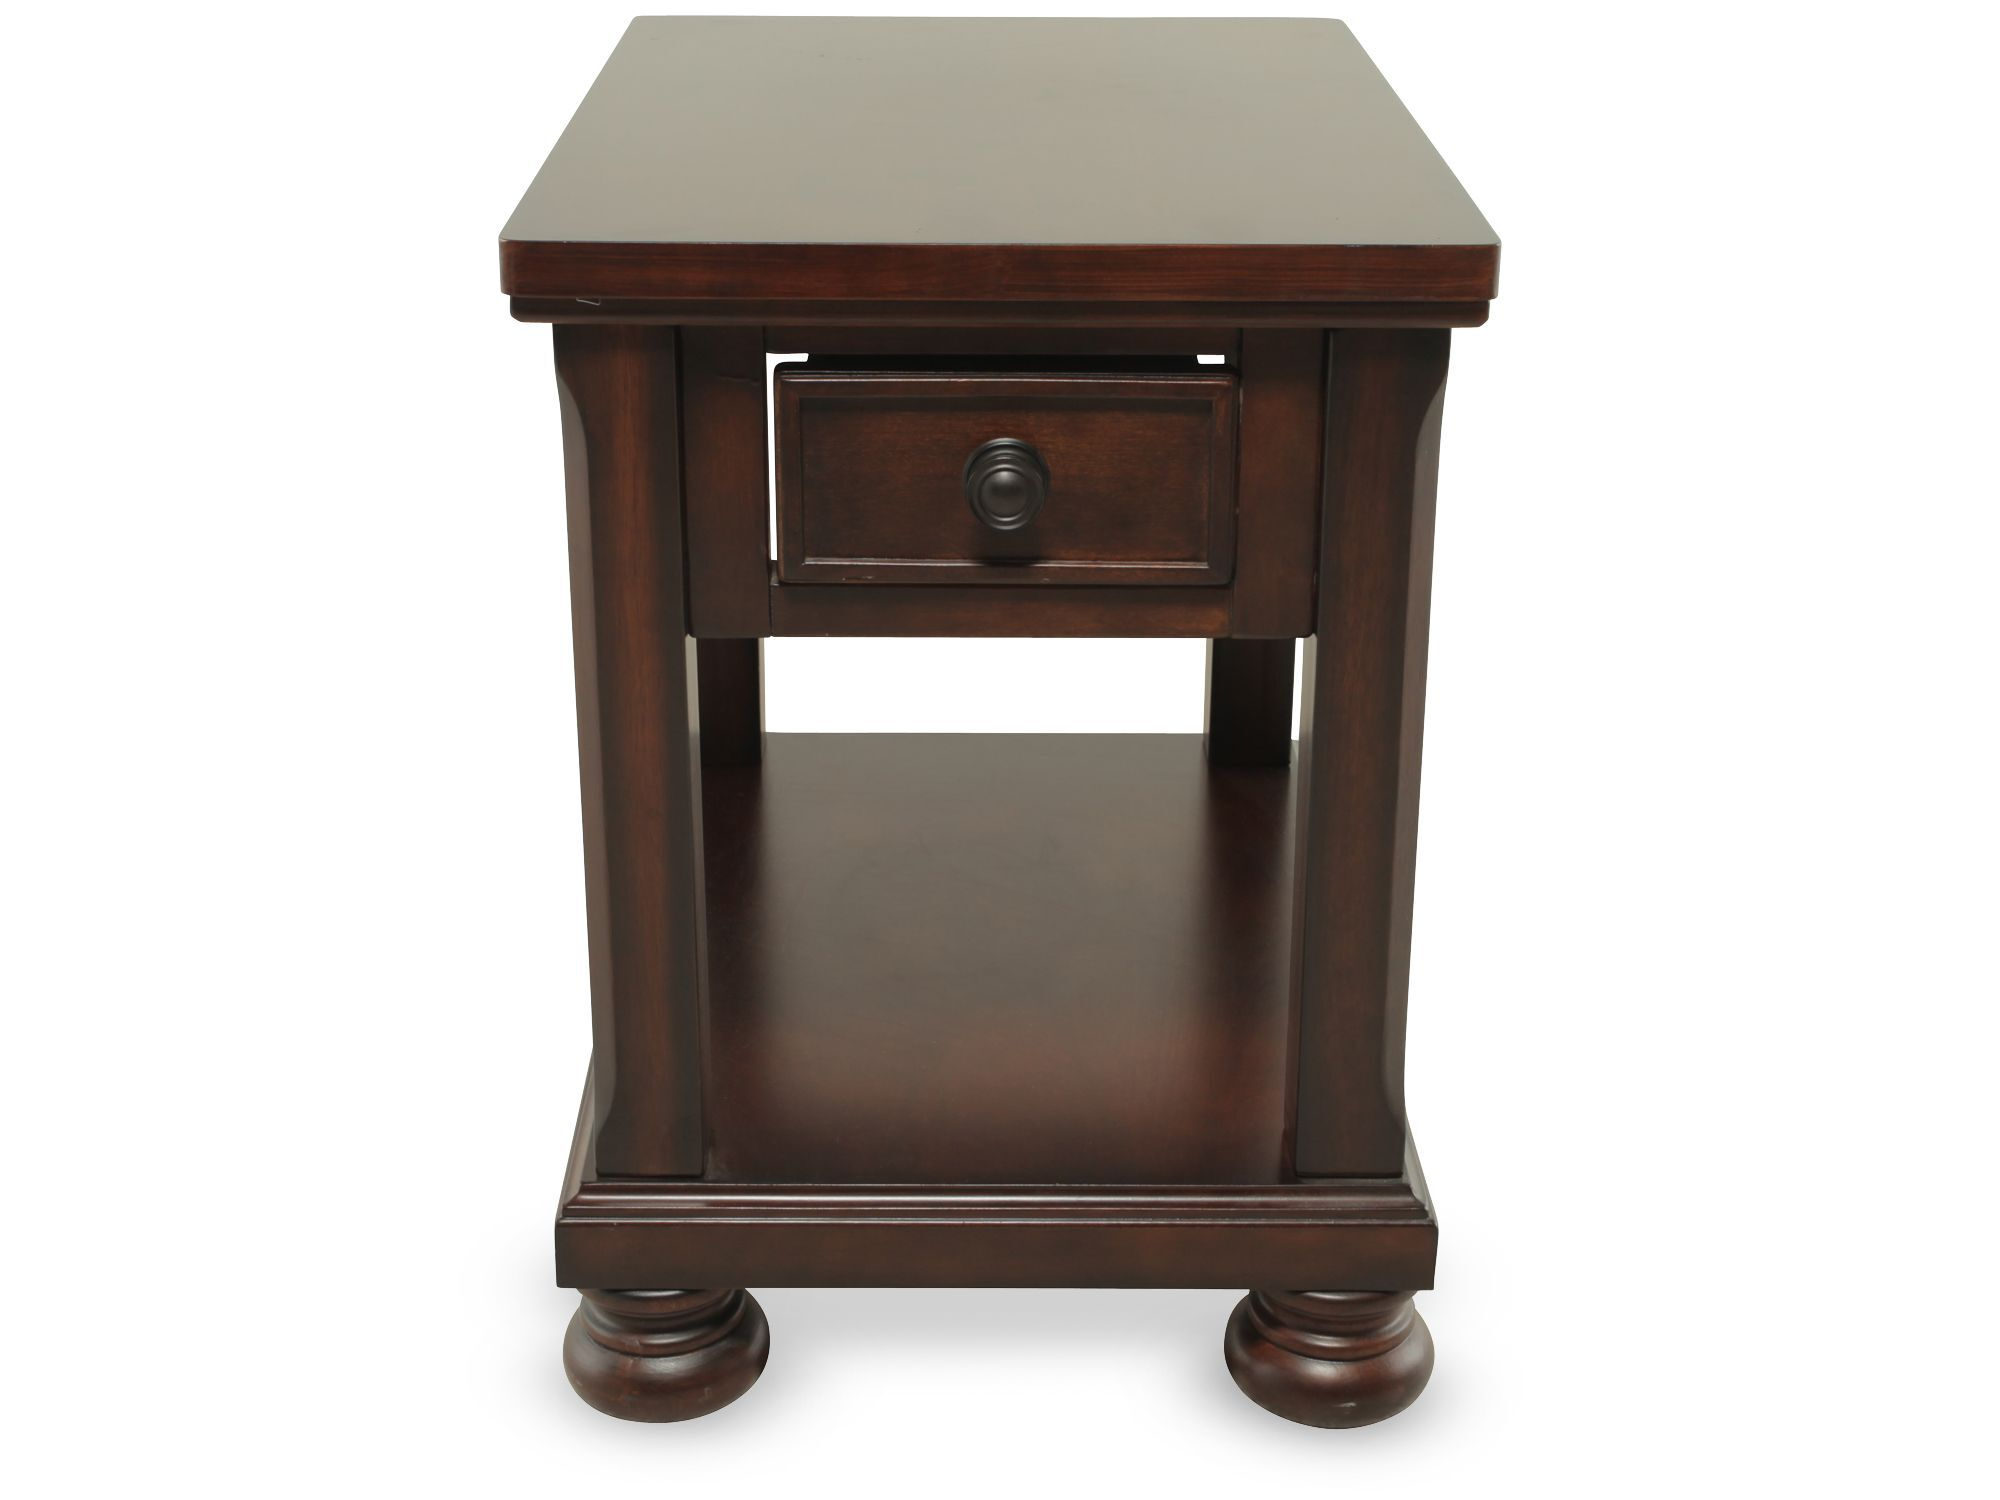 Rectangular One Drawer Traditional End Tableu0026nbsp;in Brown Cherry